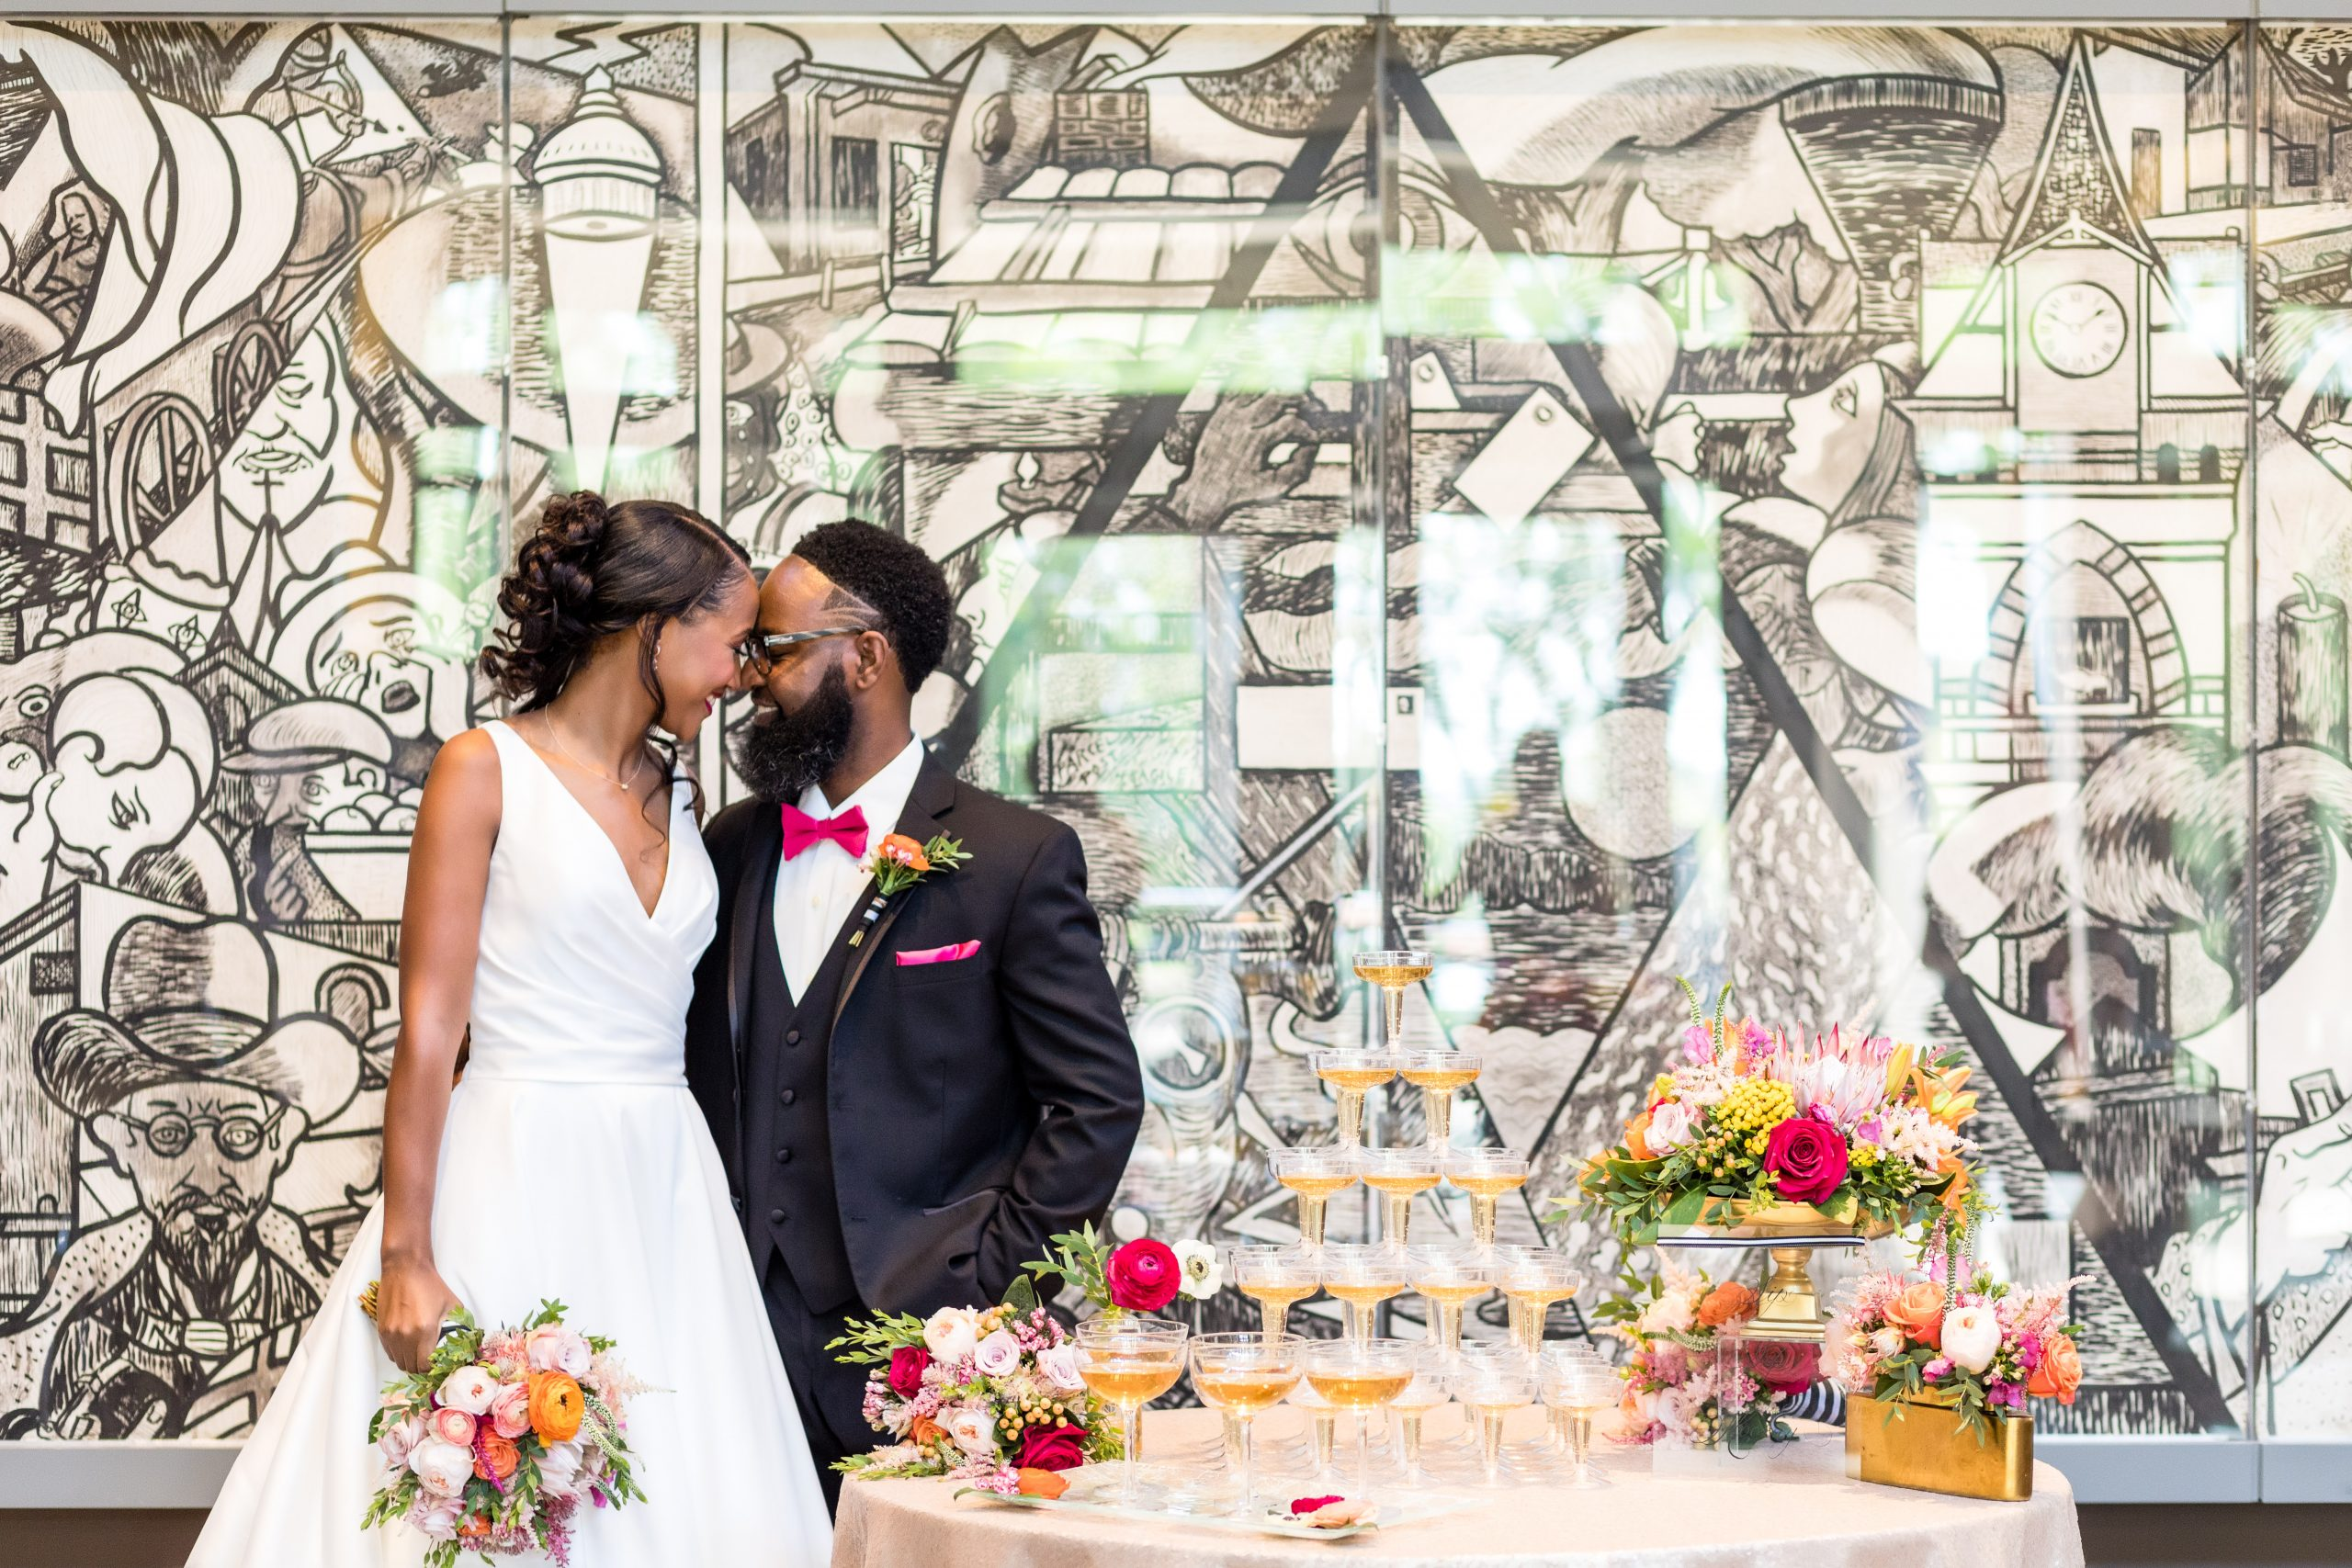 A playful head touch next to a luxurious table adorned with flowers and champagne at the Michener Museum styled urban contemporary shoot for Ashley Gerrity Photography this past Summer. Featured on Dream Weddings.